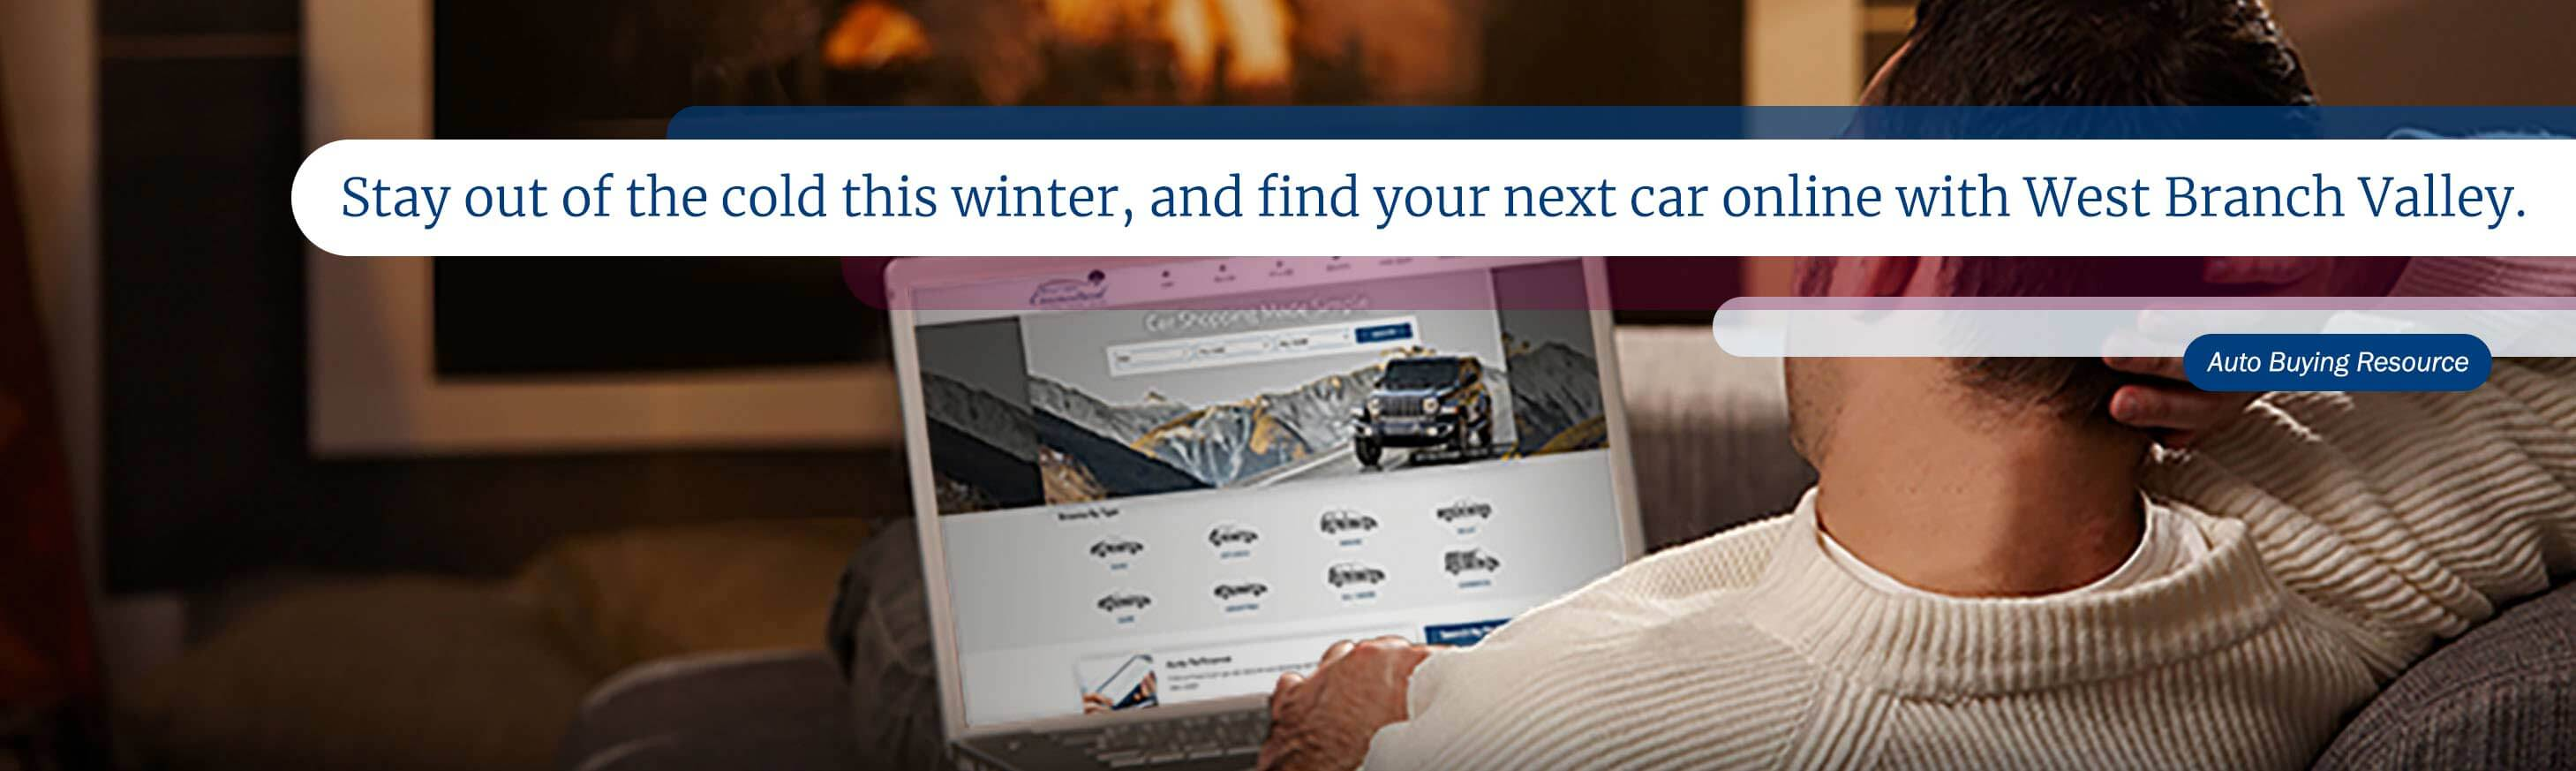 Stay out of the cold this winter, and find your next car online with West Branch Valley. Auto Buying Resource